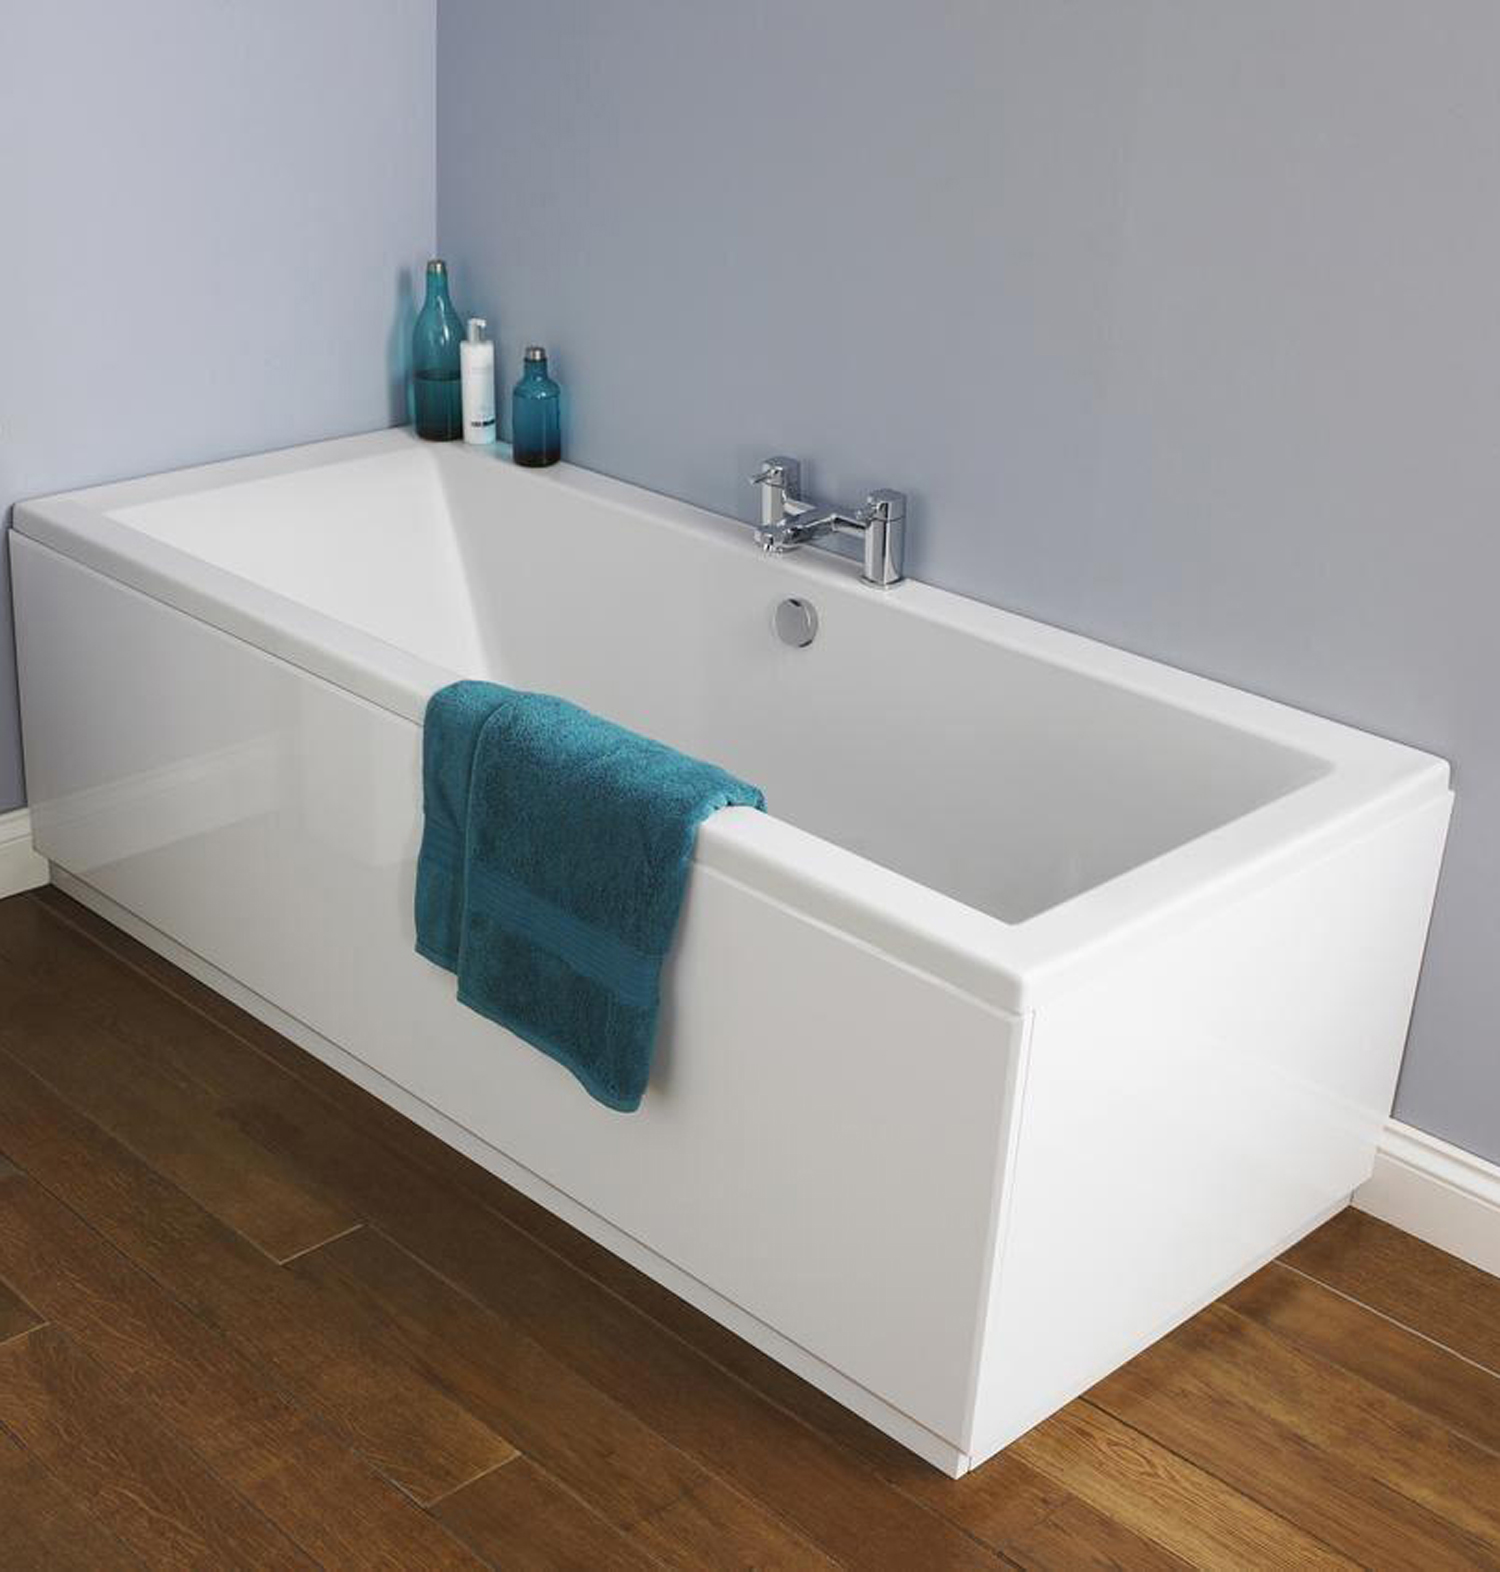 designer single double ended straight bathtub bathroom